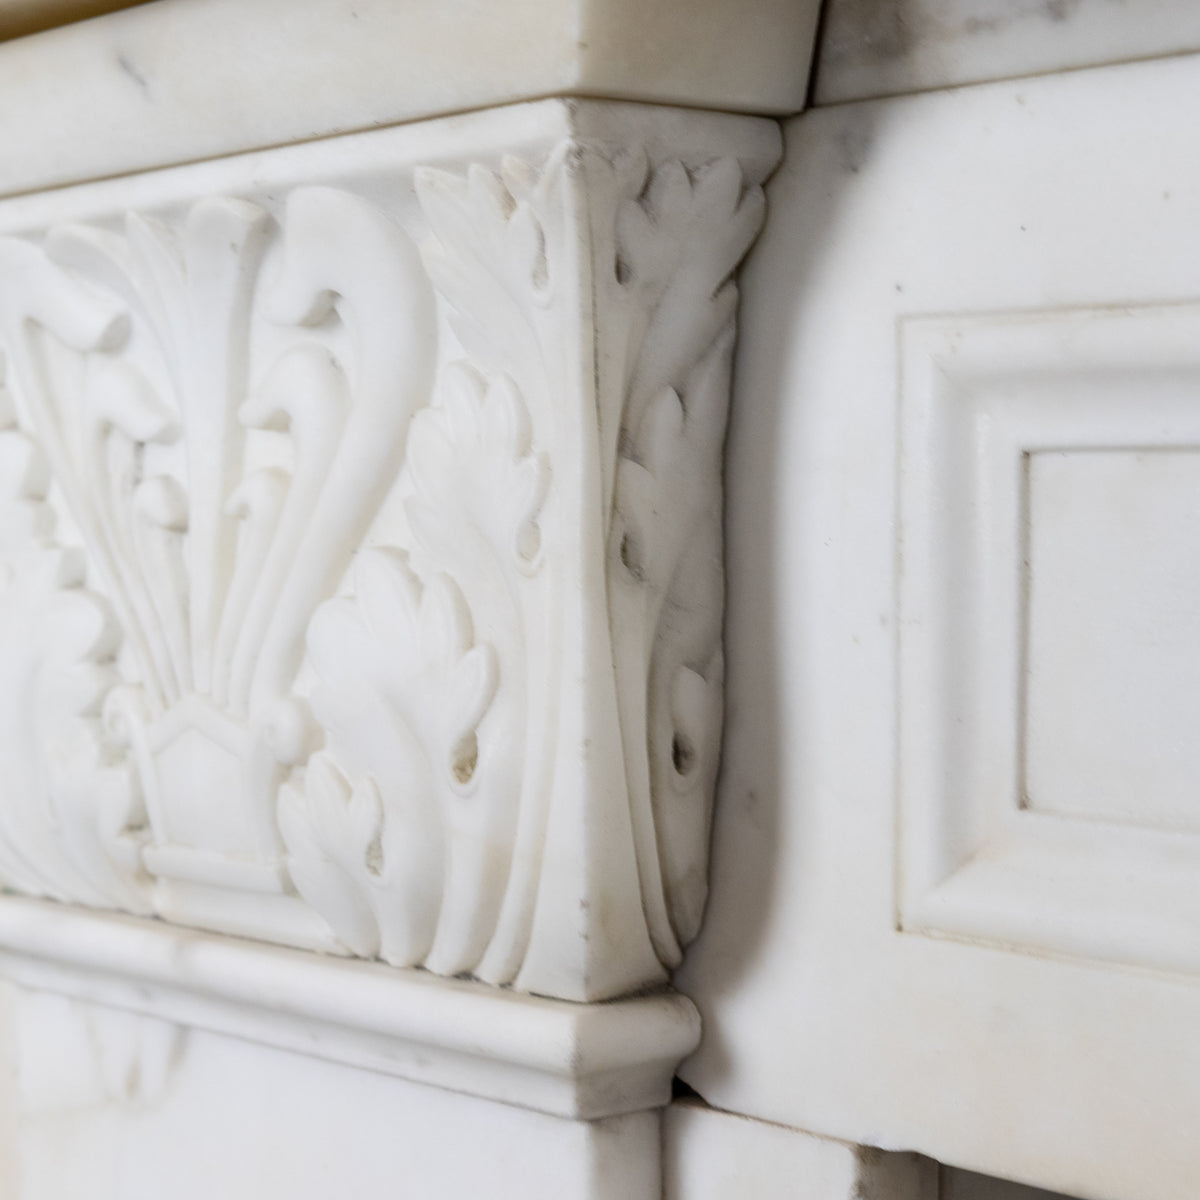 Antique Regency Carved Marble Chimneypiece with Acanthus | The Architectural Forum